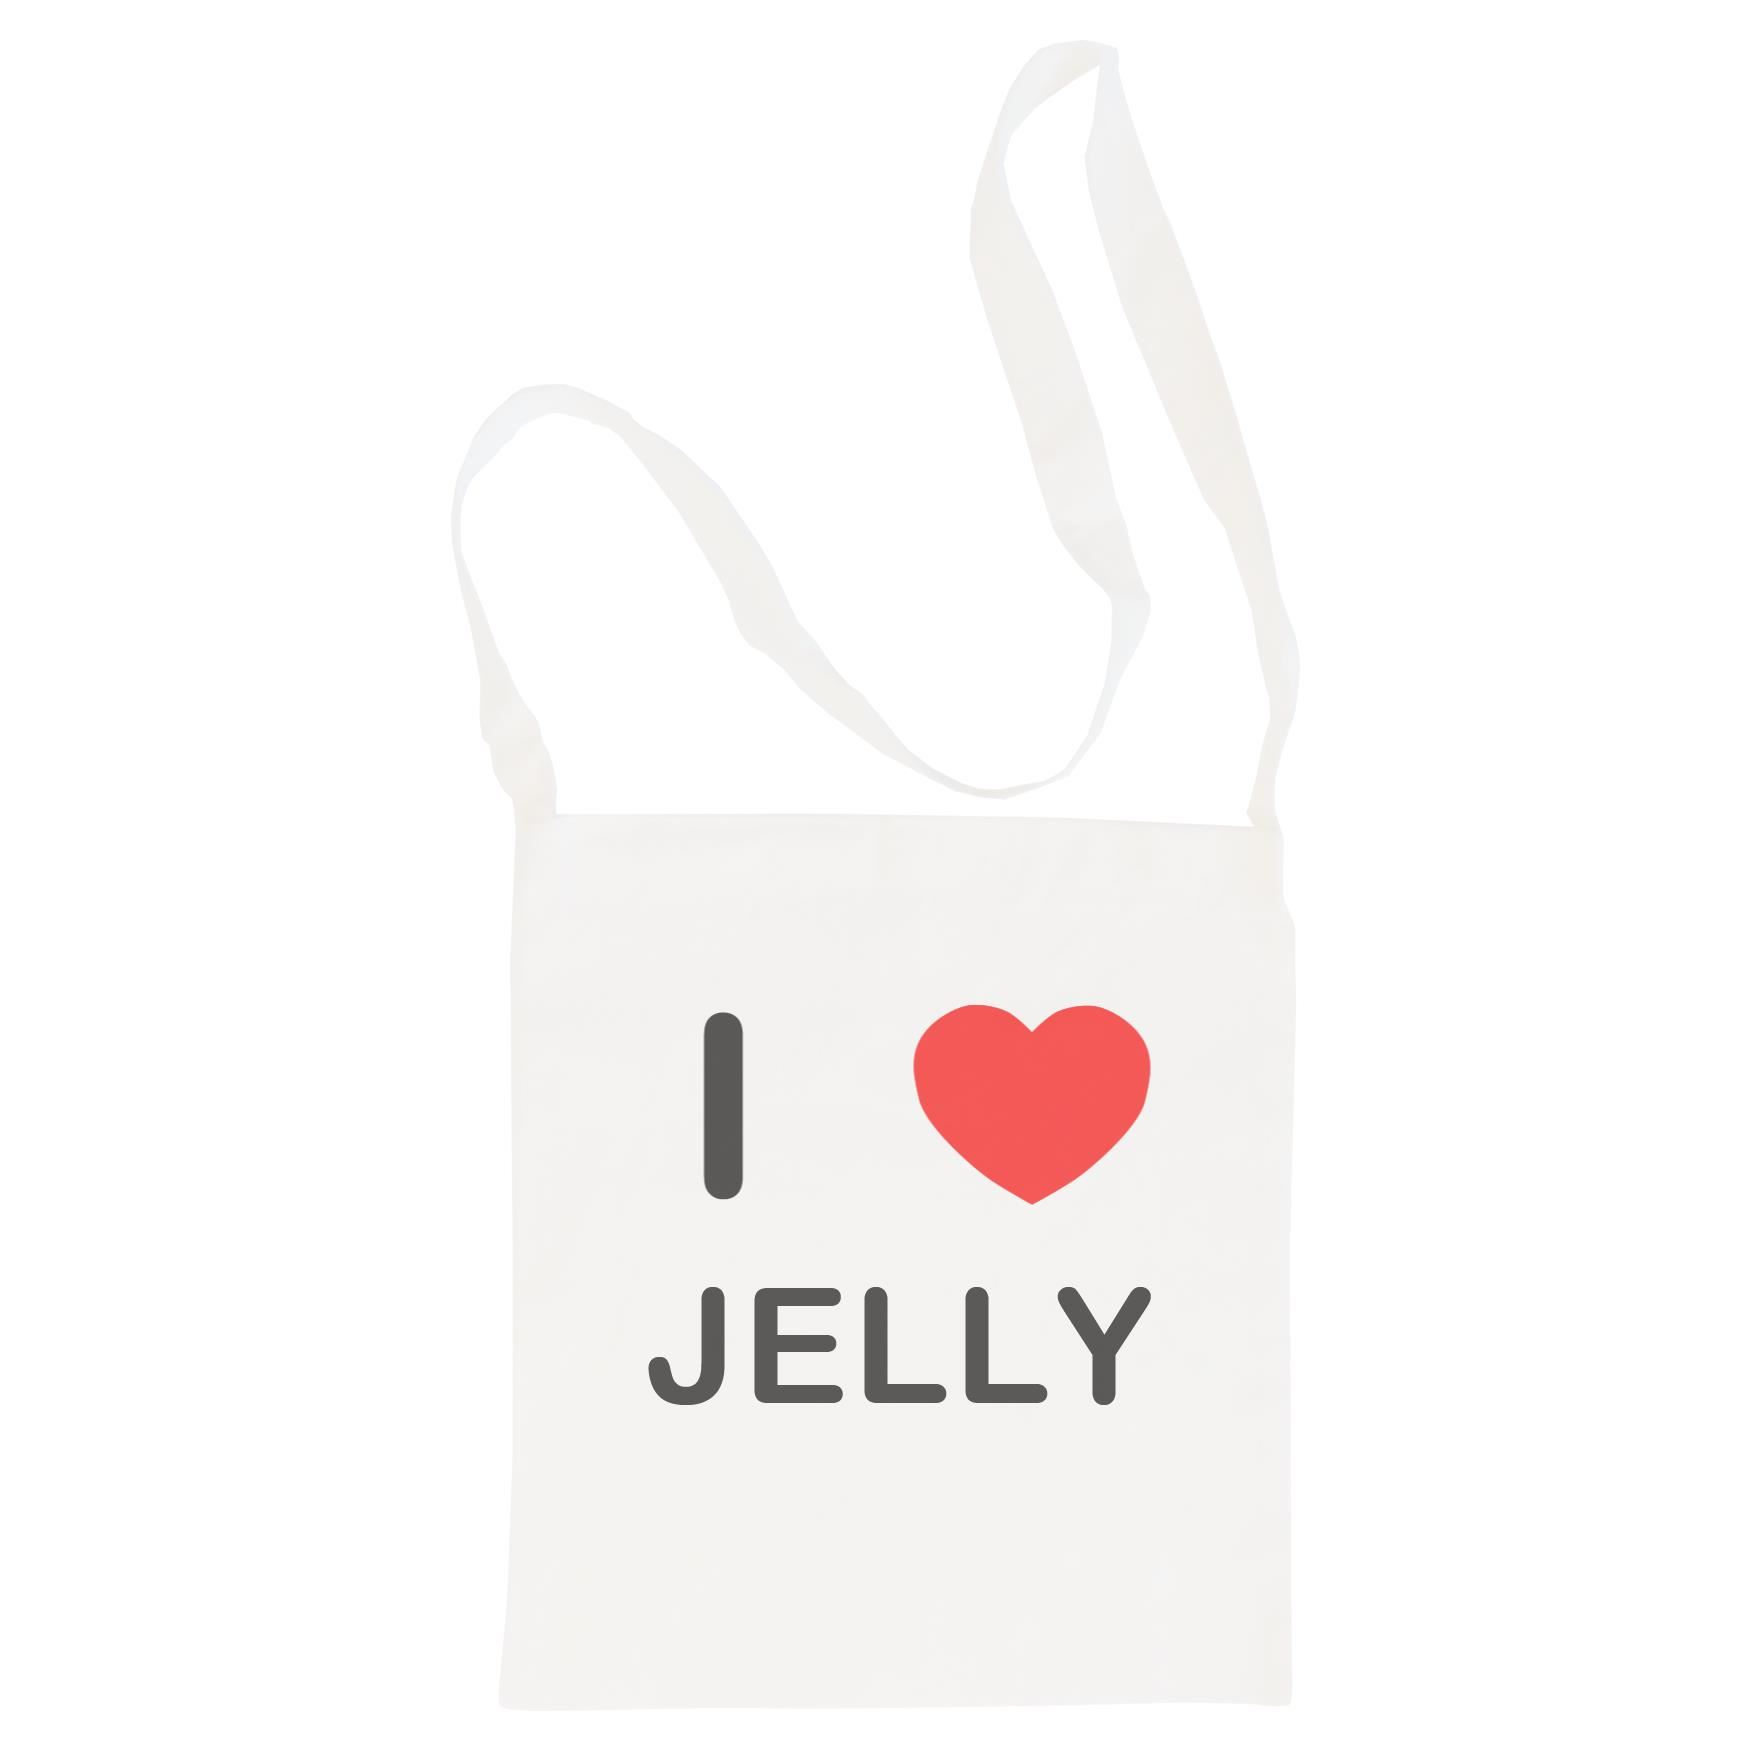 I Love Jelly - Cotton Bag | Size choice Tote, Shopper or Sling